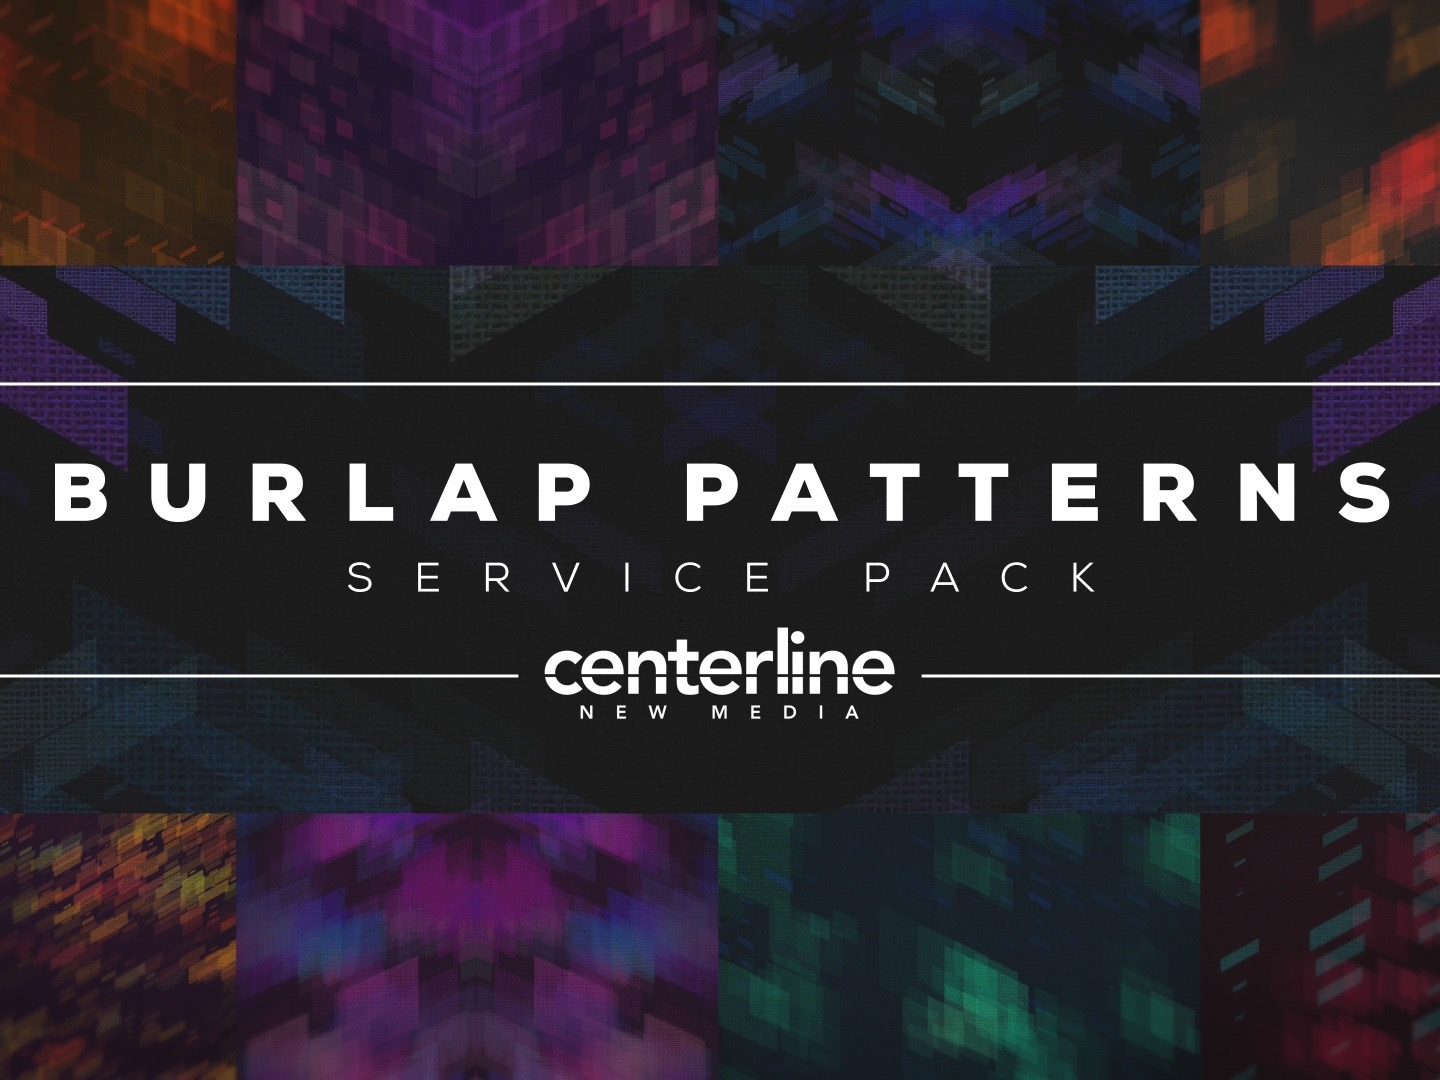 BURLAP PATTERNS SERVICE PACK